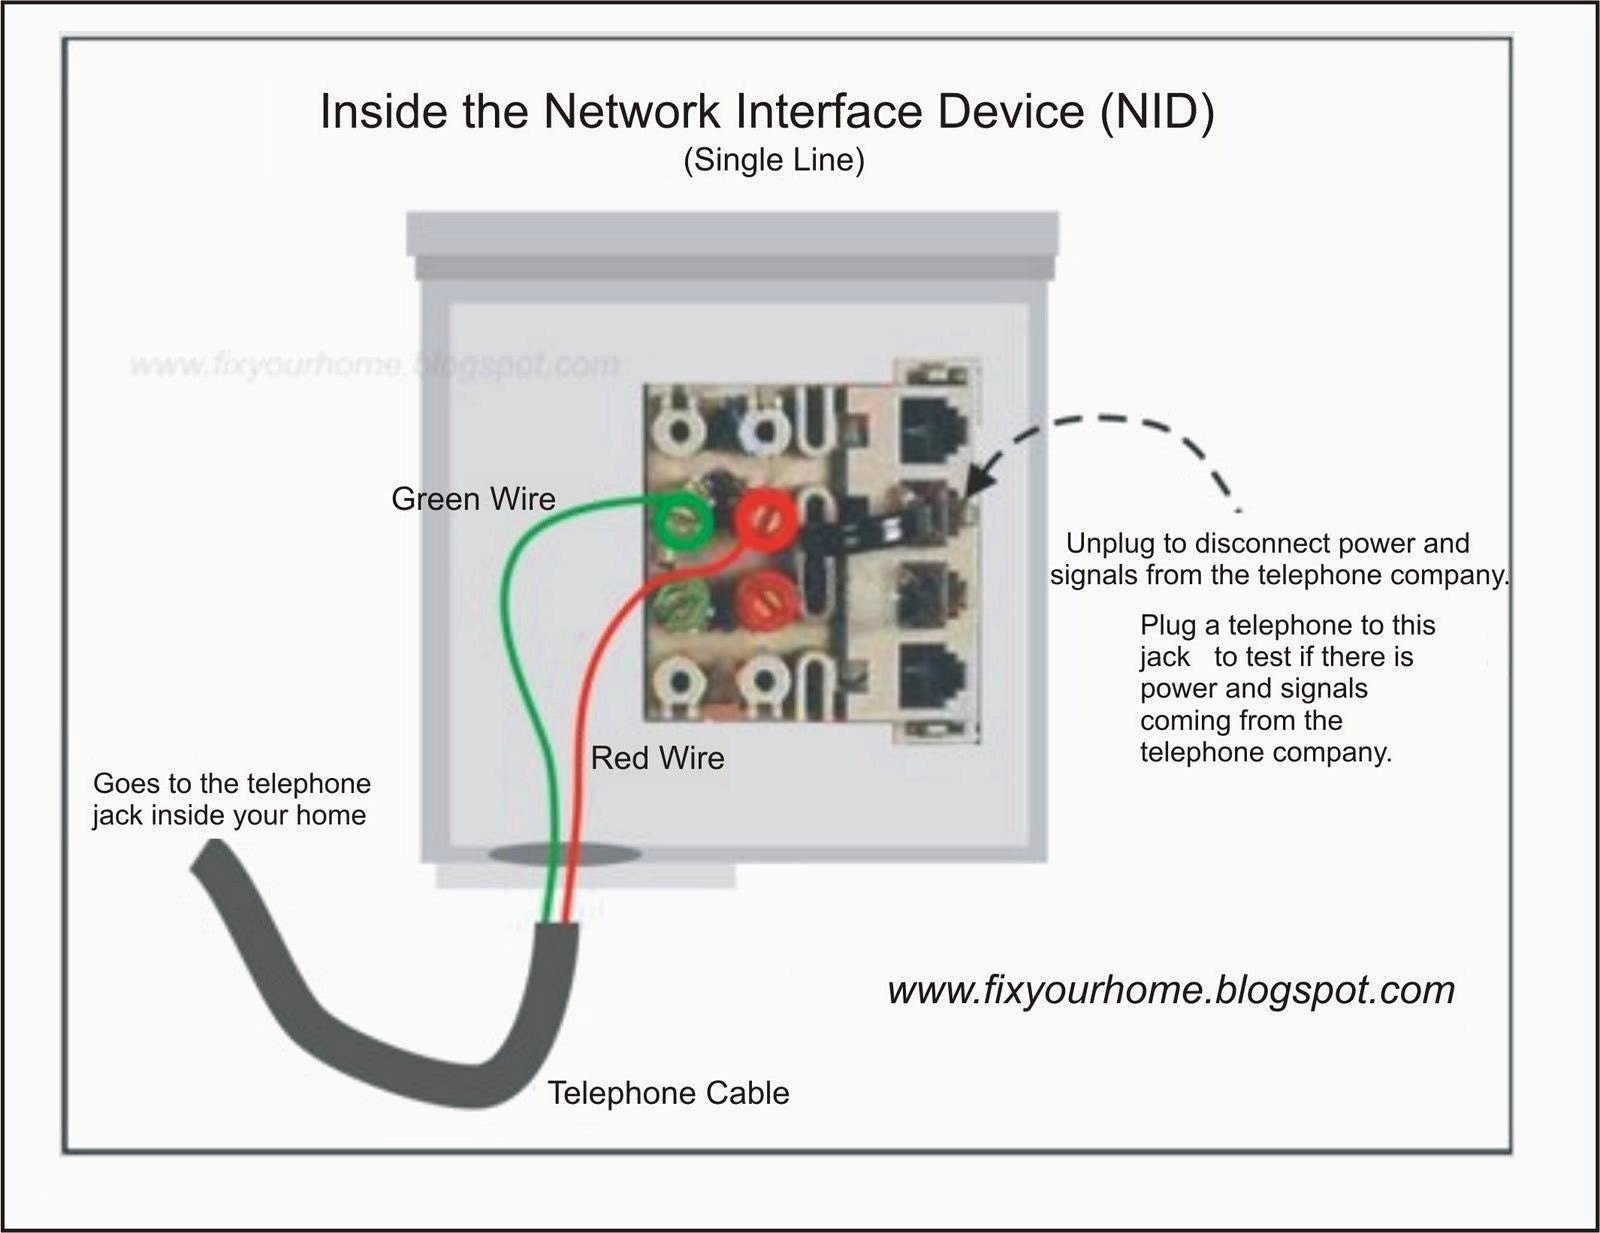 Rj Phone Wiring - Wiring Diagrams Hidden on